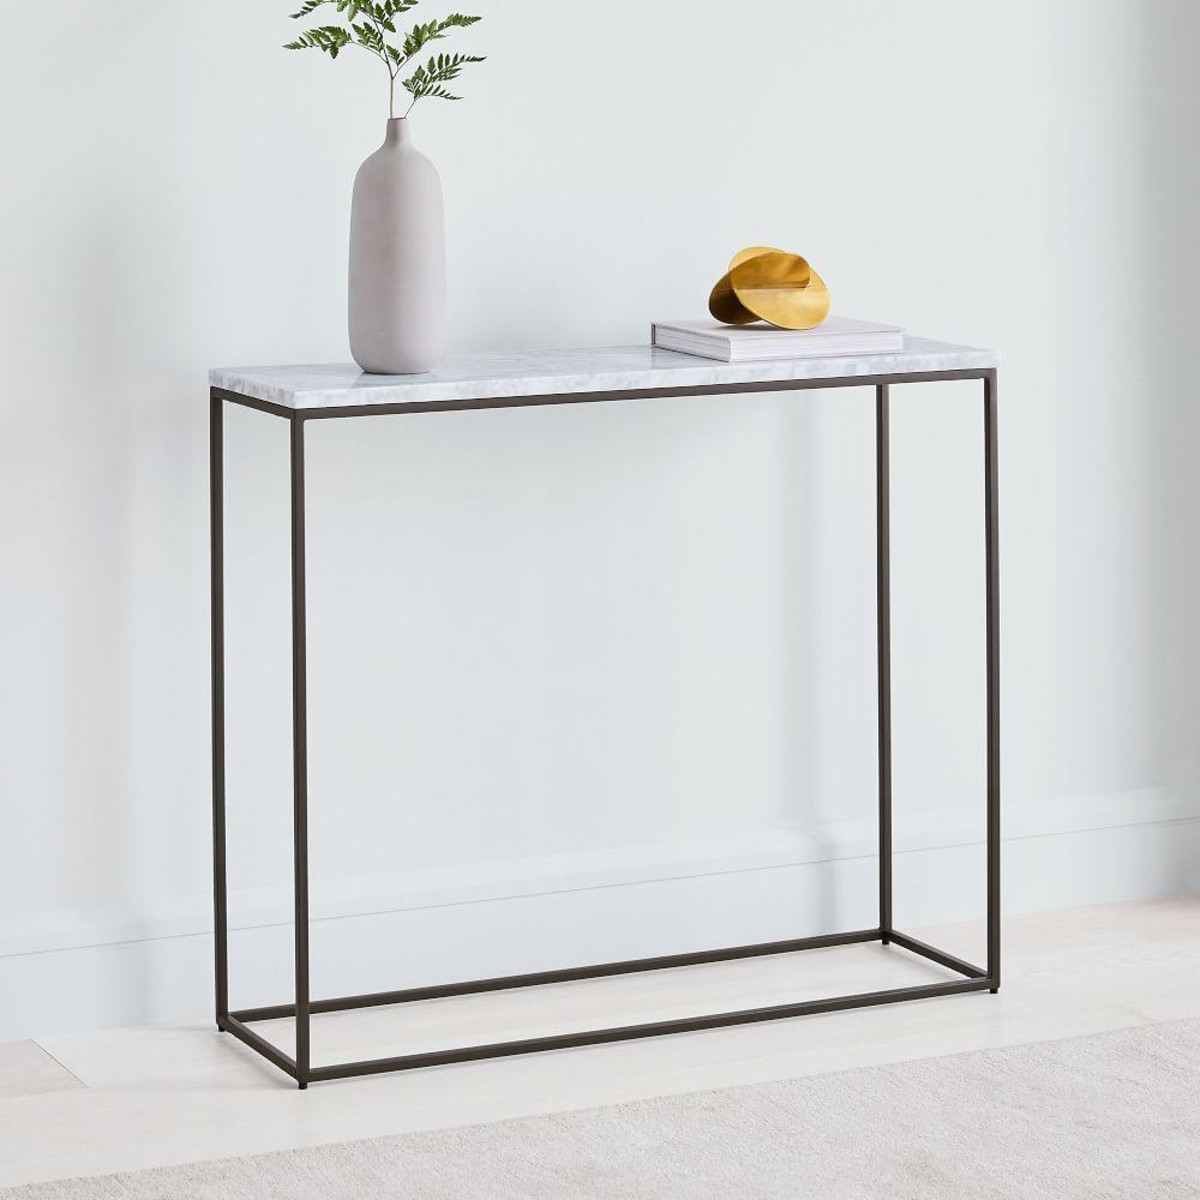 Streamline marble console table